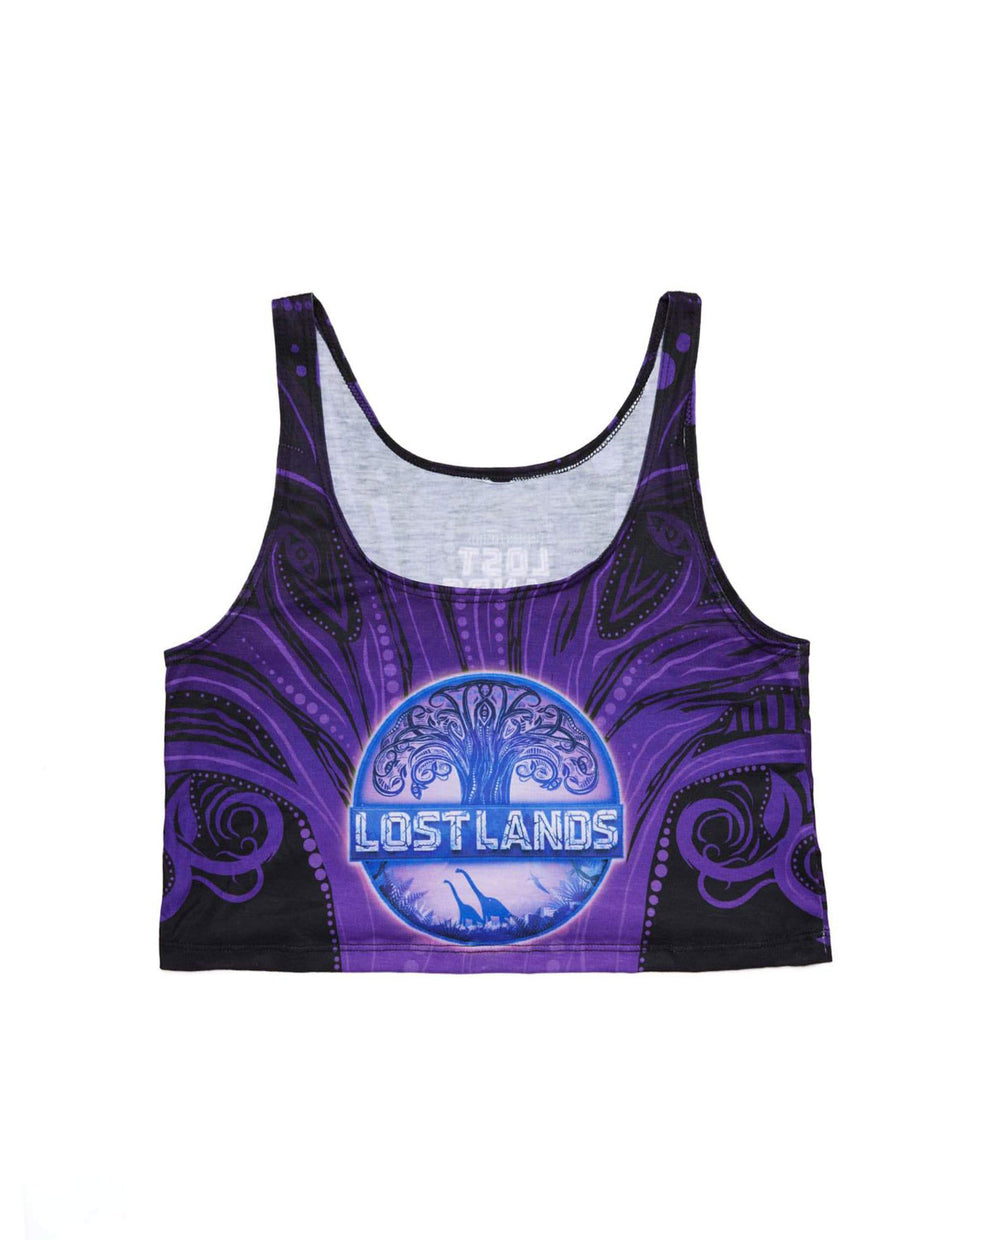 Lost Lands 'Crop Circle' Women's Crop Top (Purple)